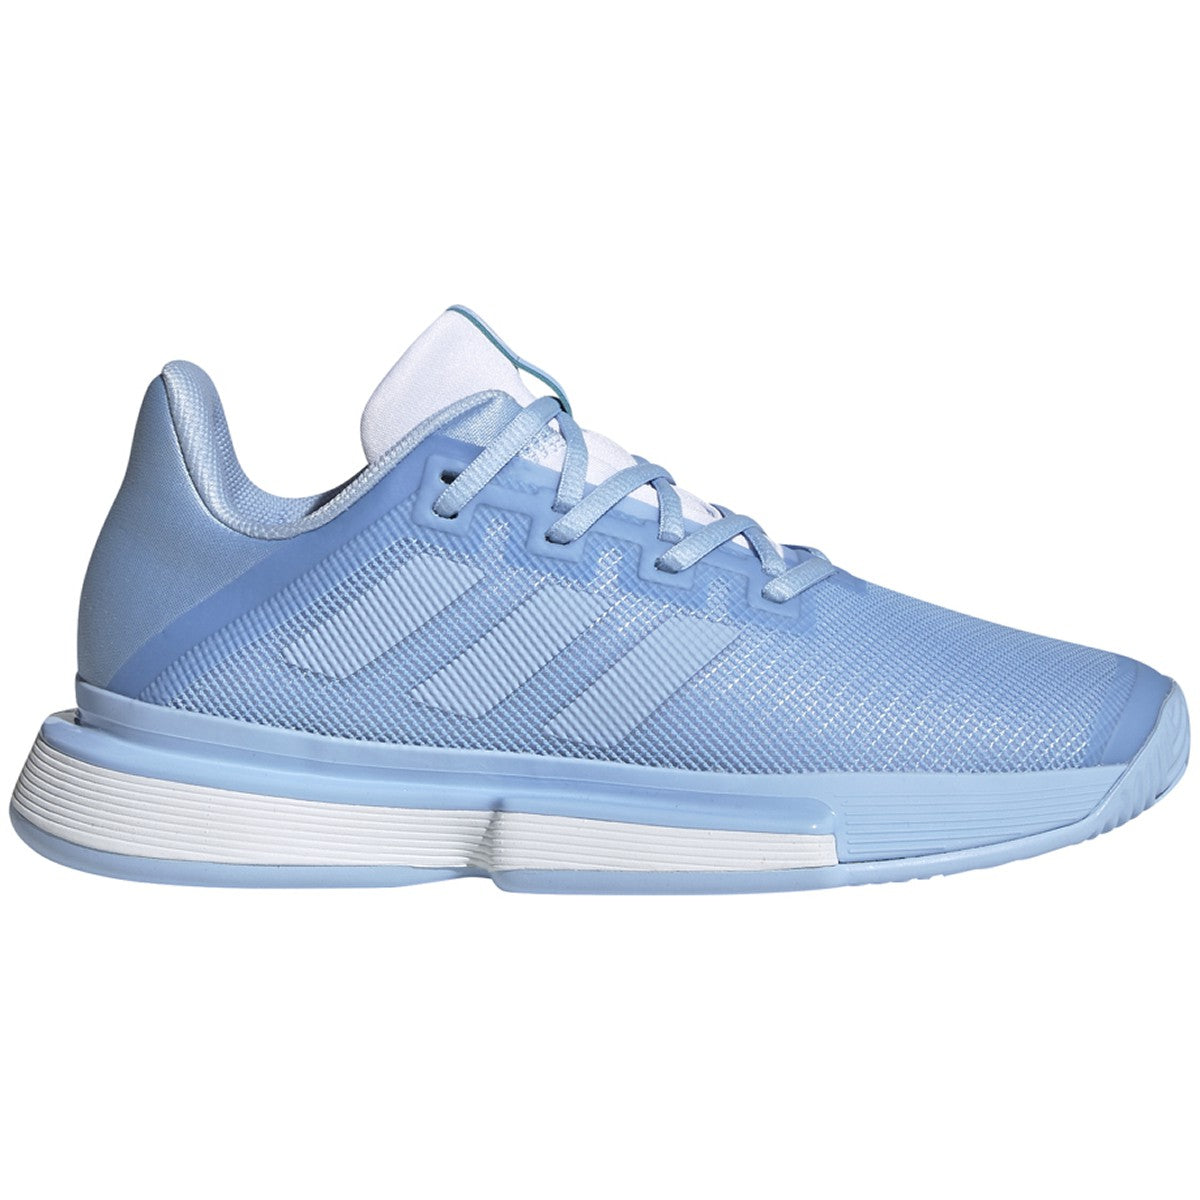 Adidas SoleMatch Bounce   Blue/White